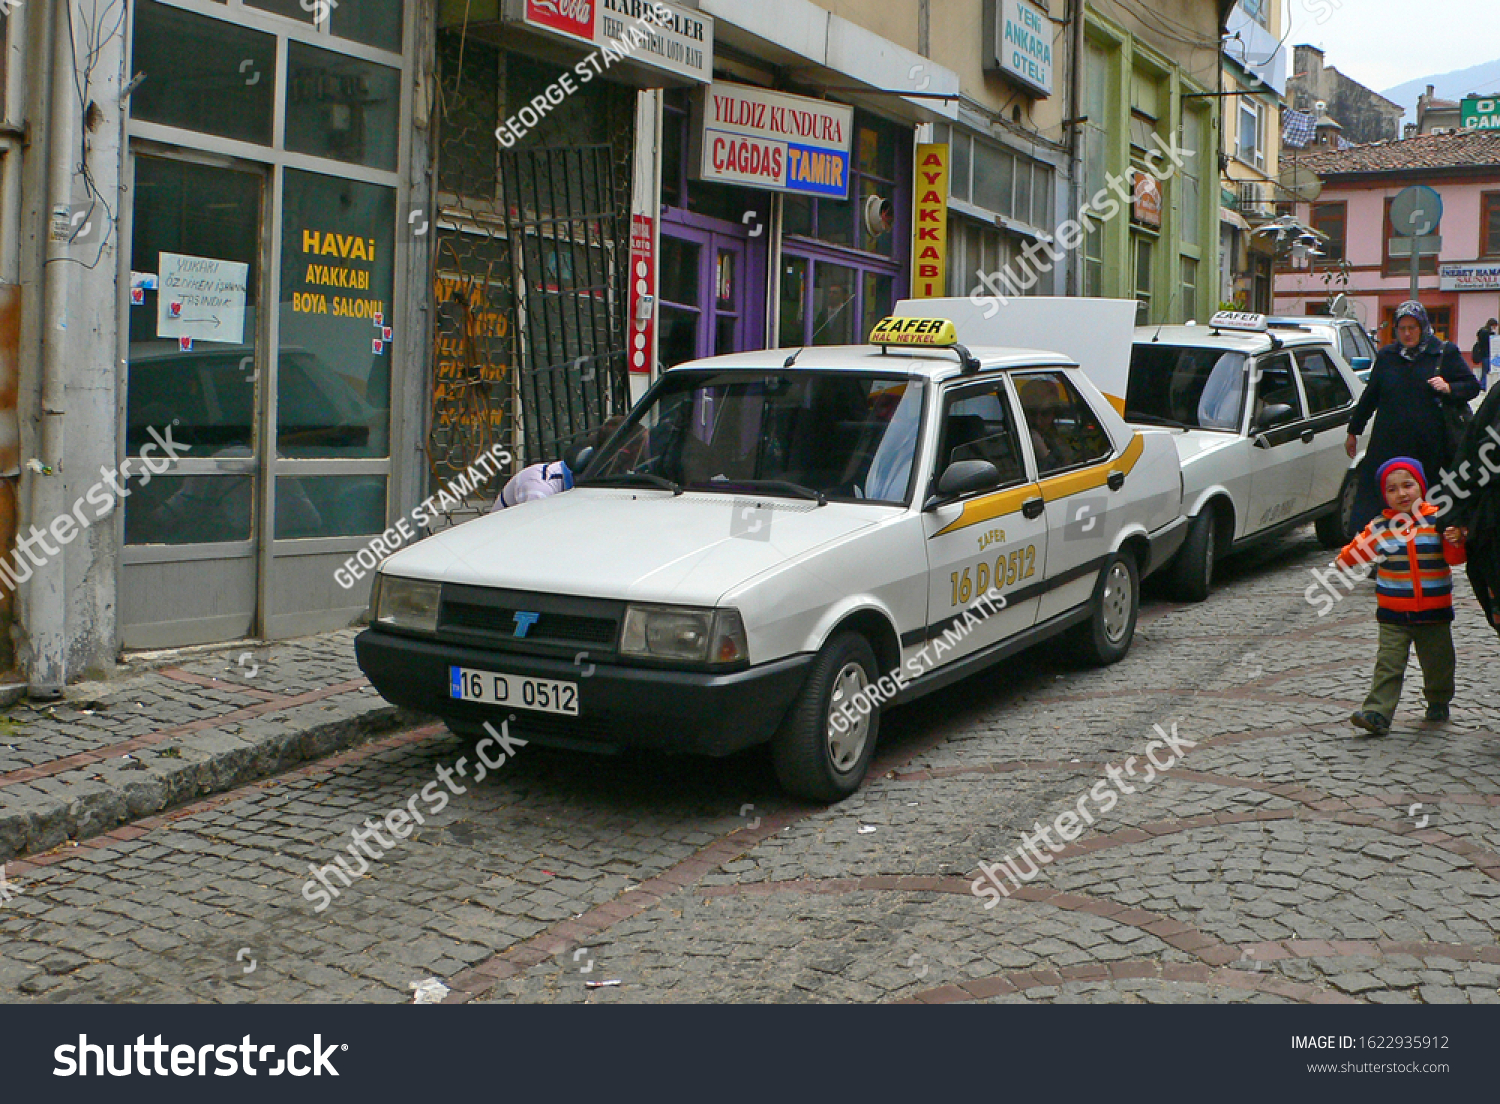 Turkish Taxi Images Stock Photos Vectors Shutterstock